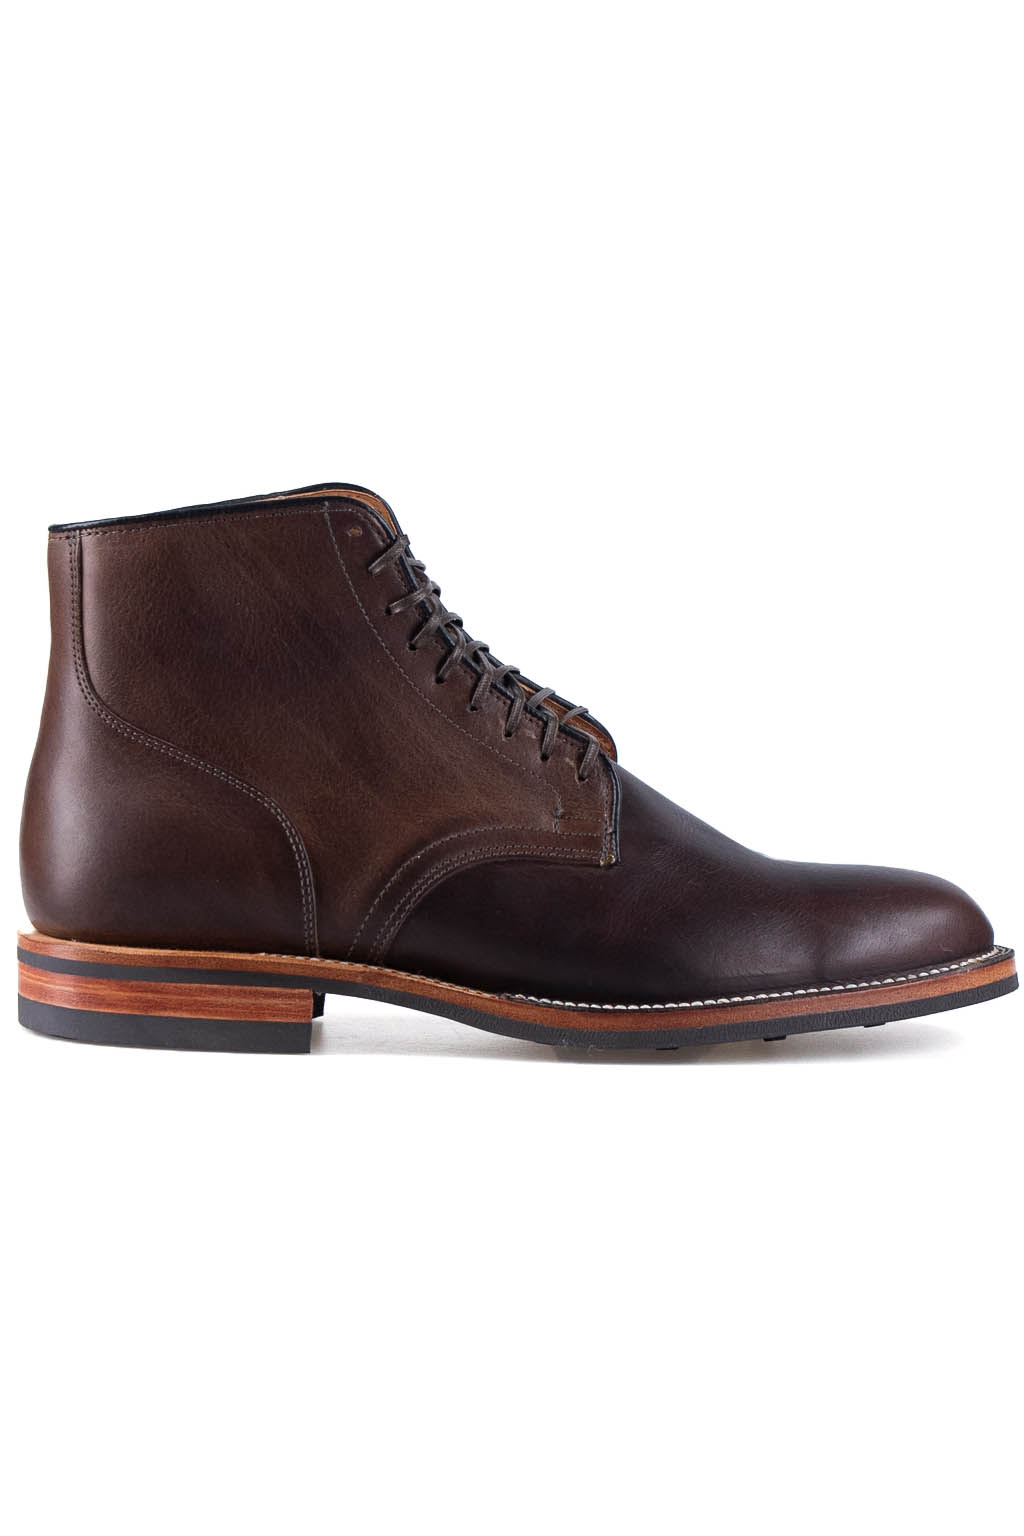 Viberg Service Boot- CF Stead Stone Oiled Calf